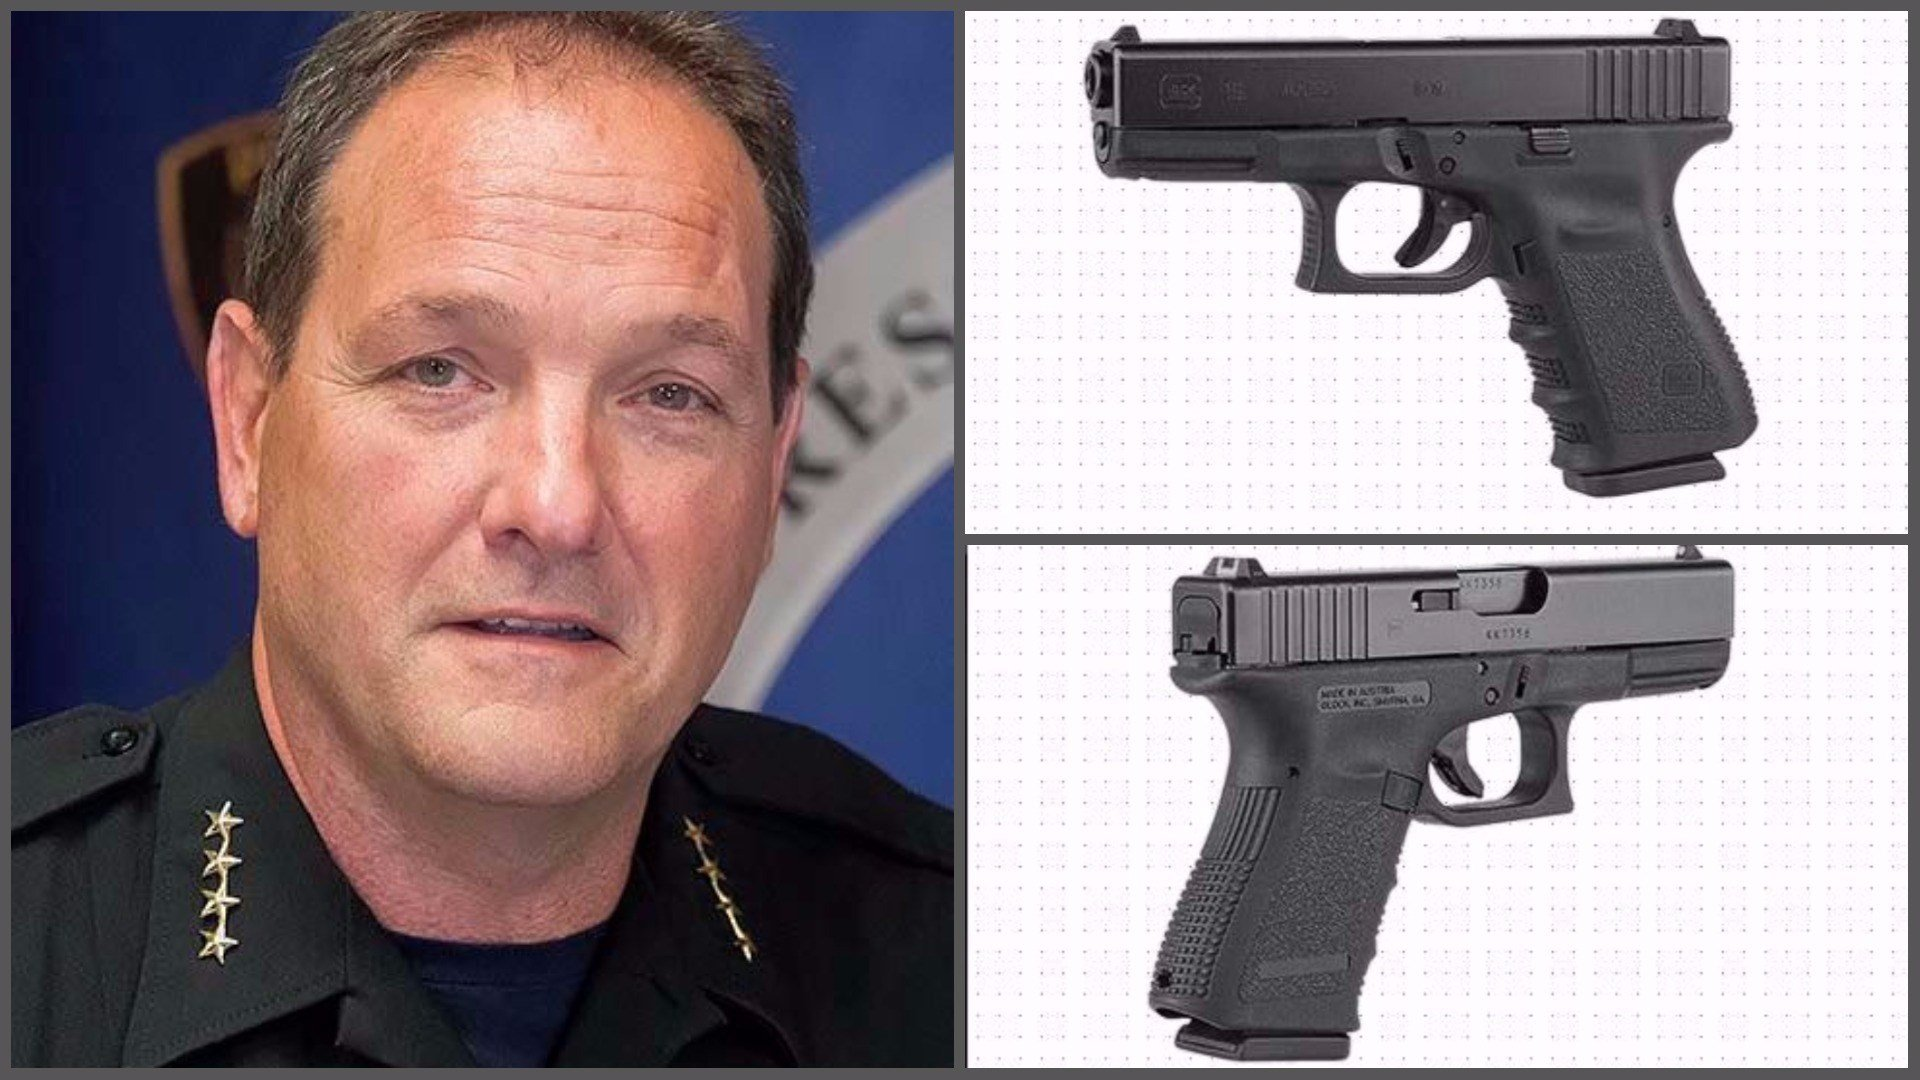 Prescott Valley Police Chief Bryan Jarrell left his Glock 19, similar to the one pictured in these images from the Glock website, in a public restroom more than a week ago. (Source: PVAZ.net and us.Glock.com)